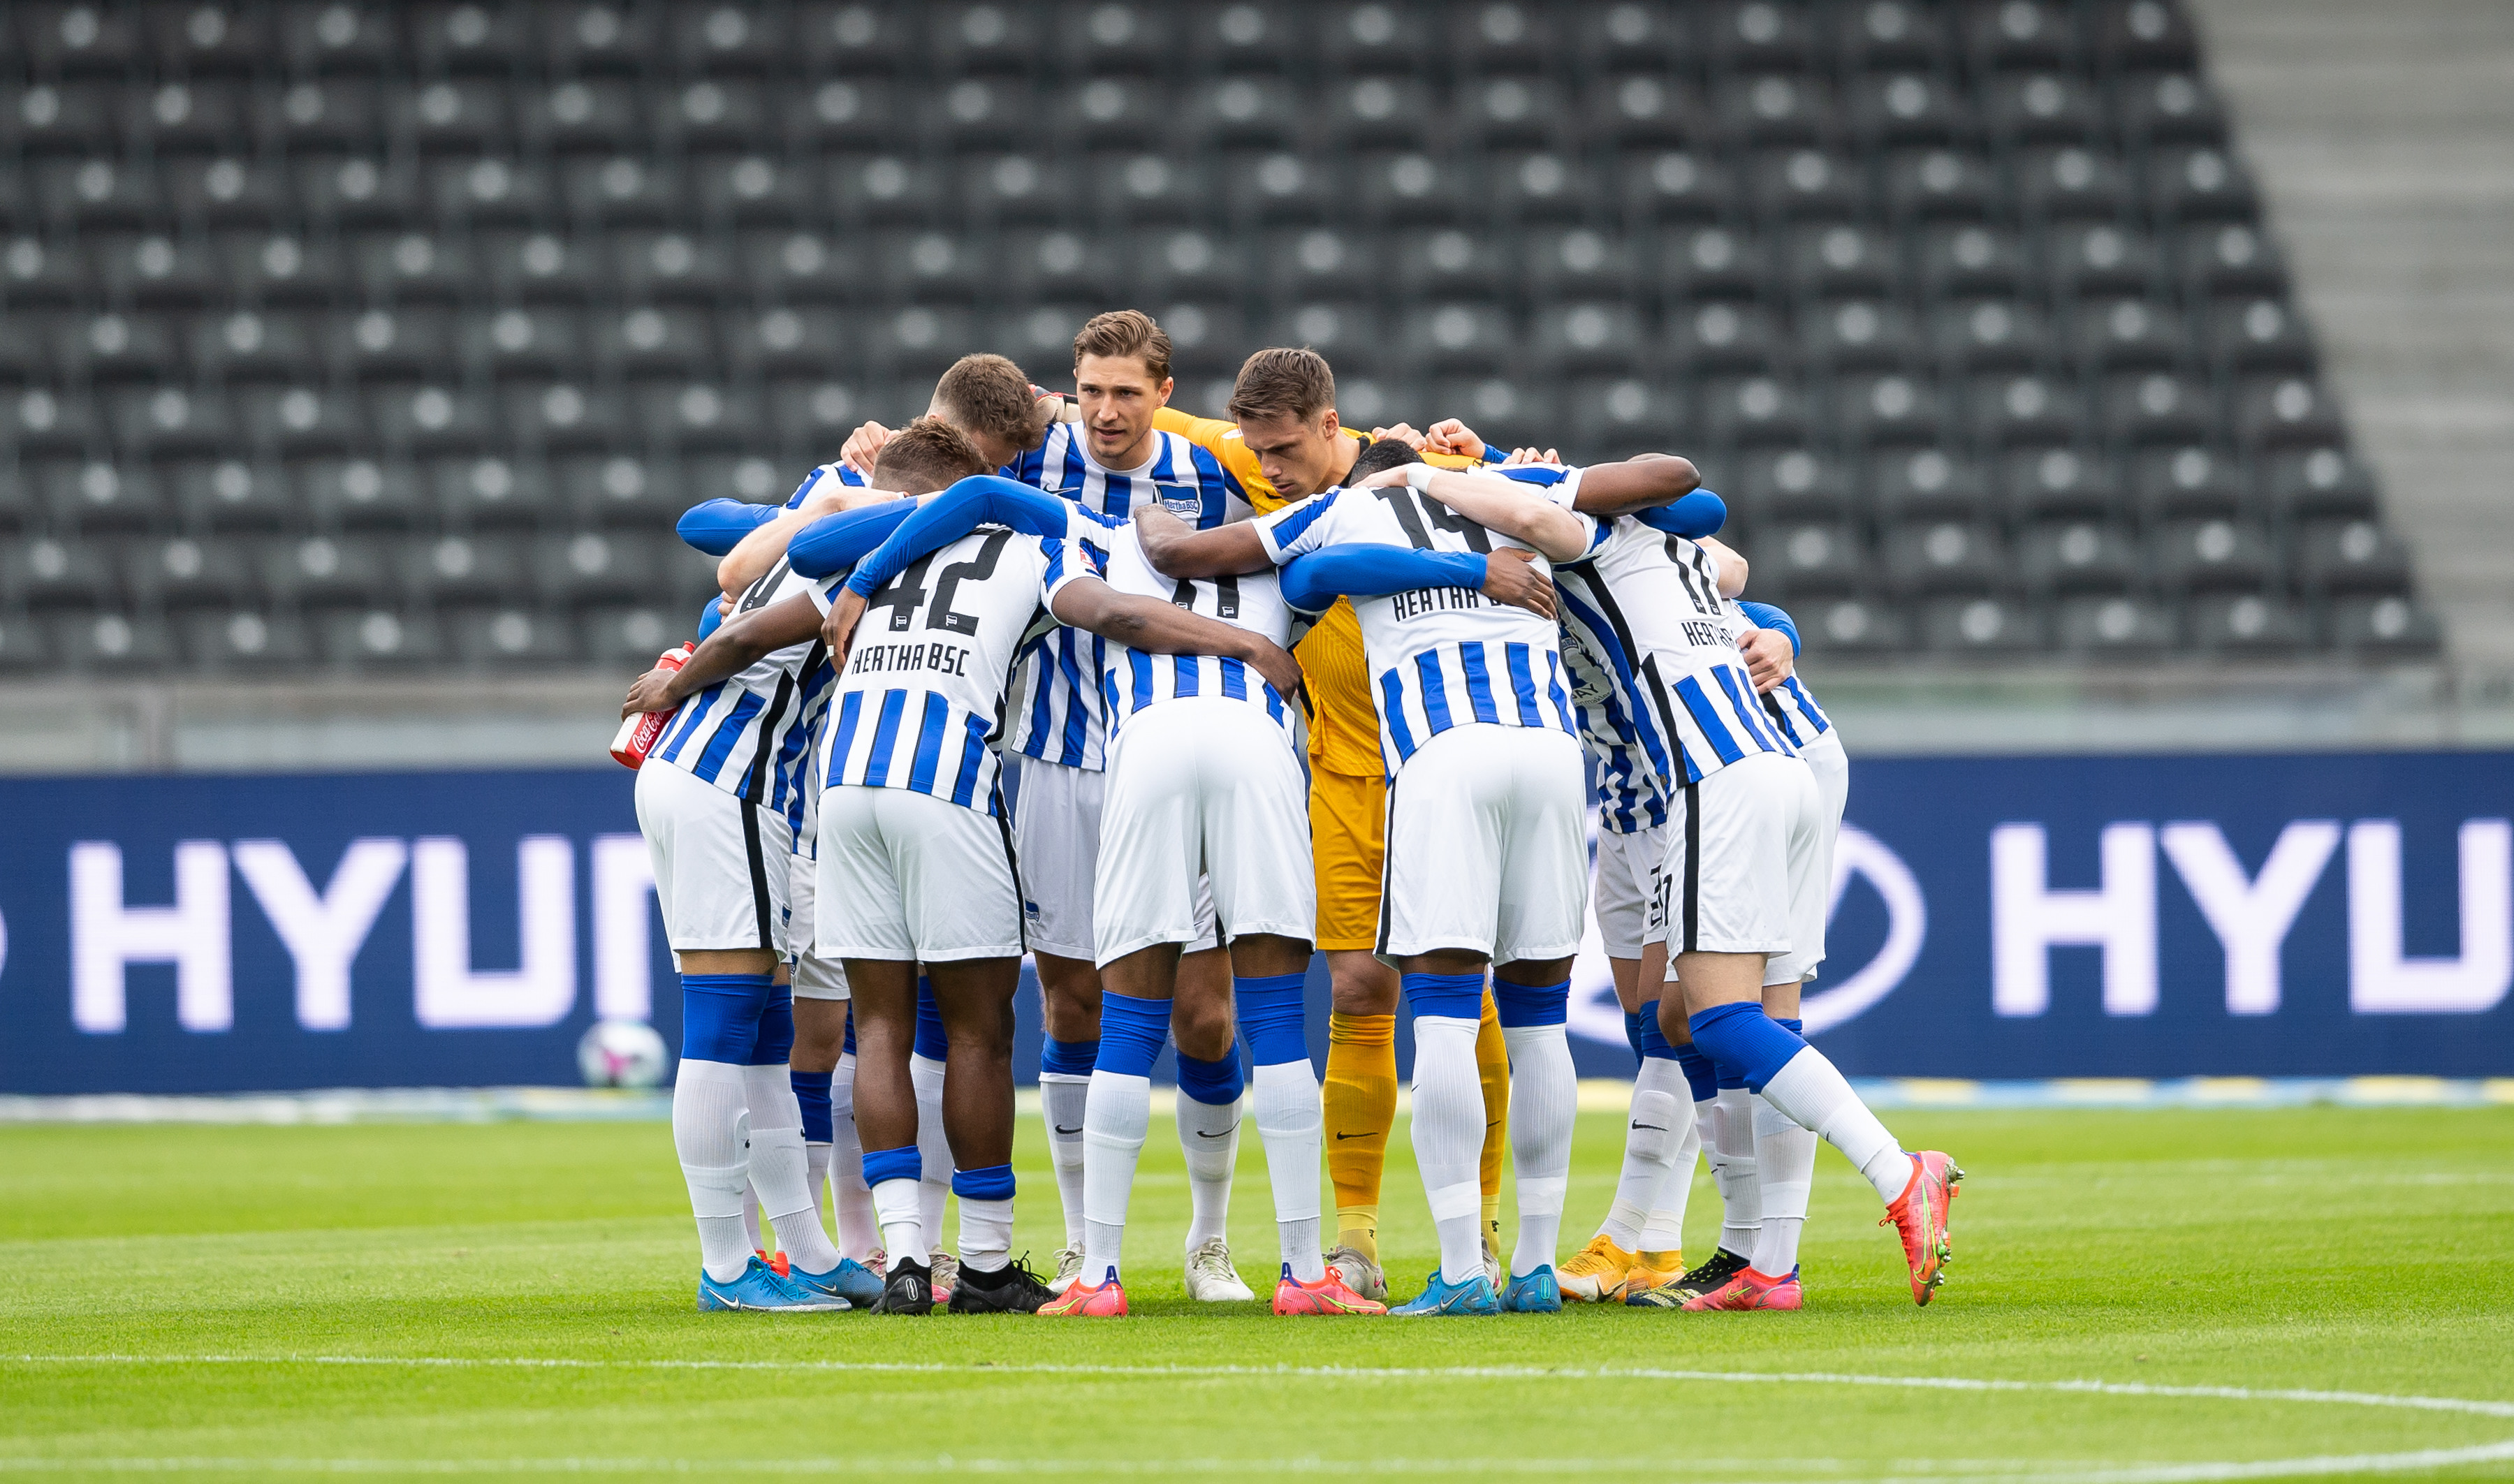 Our team huddles together before facing Mönchengladbach.